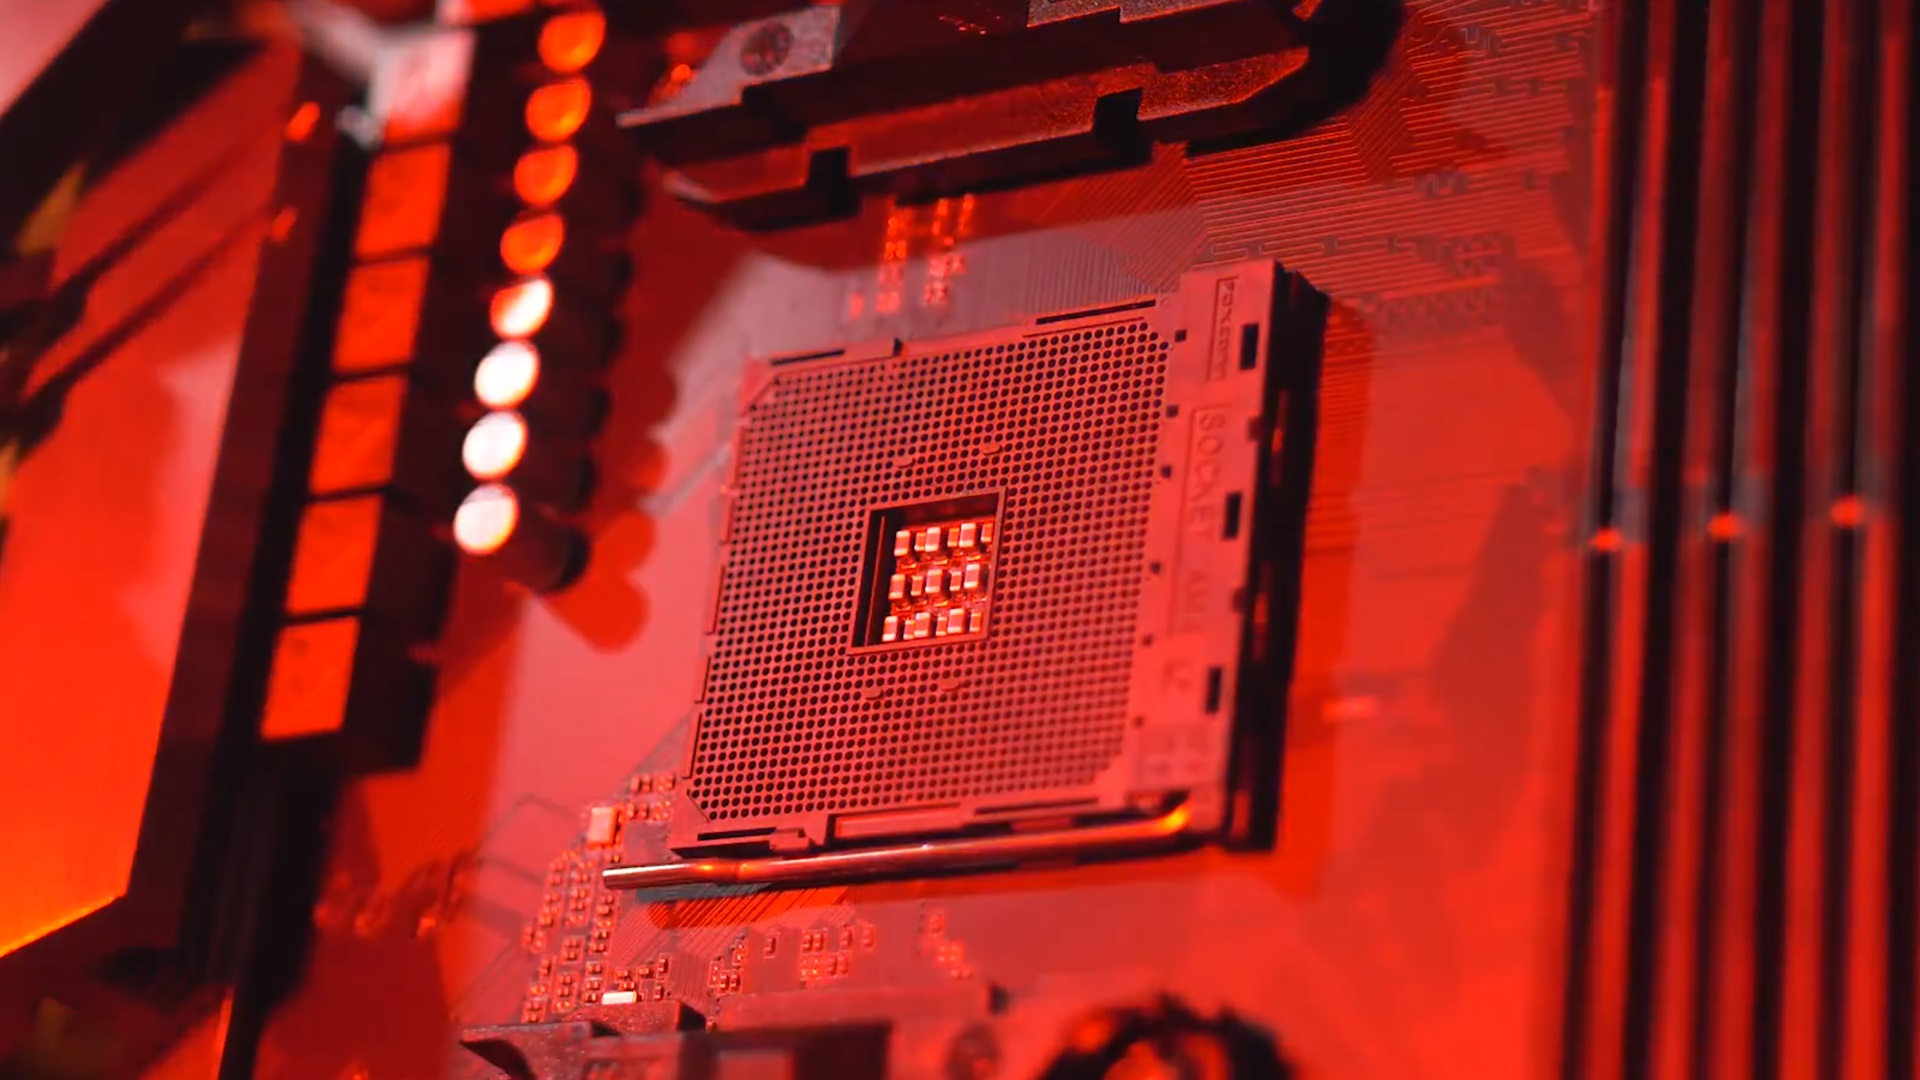 AMD will fix USB issues with a BIOS update, but you'll have to wait until April